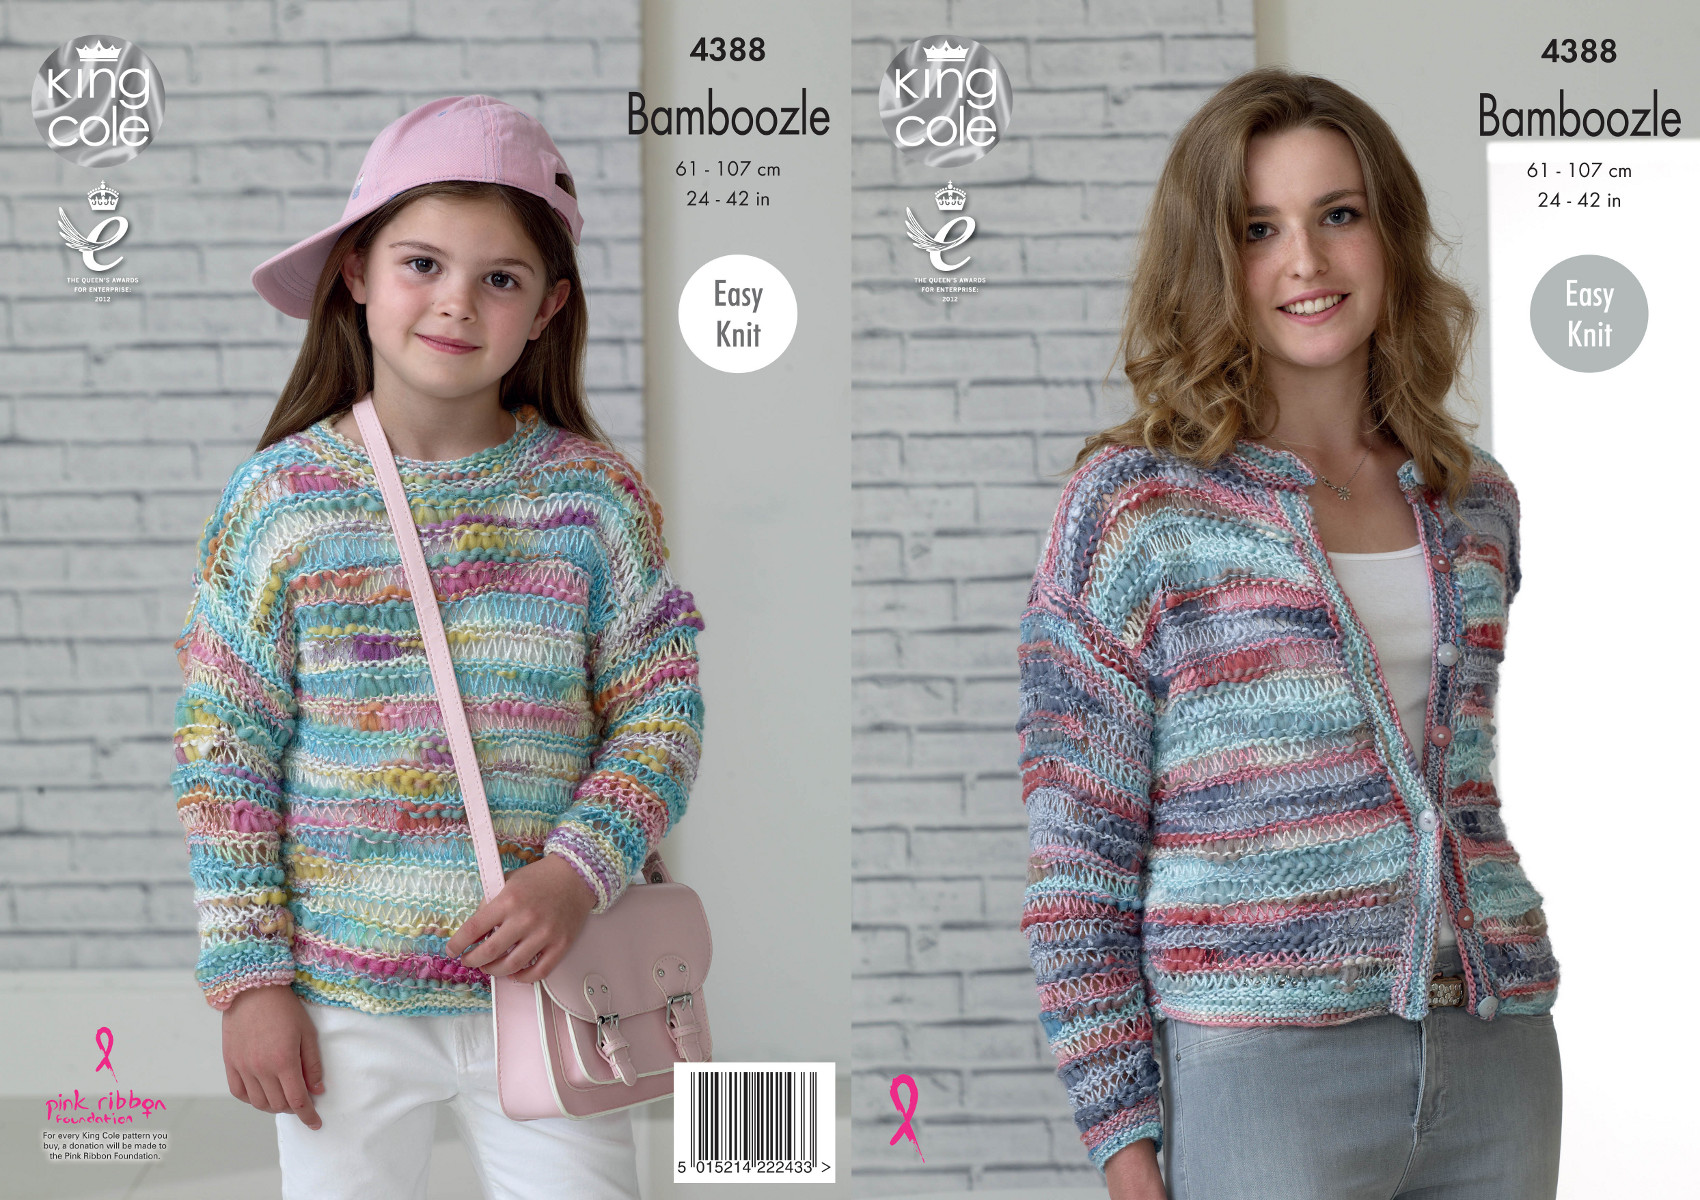 Knitting Jumper Pattern : Easy knit jumper cardigan knitting pattern womens girls king cole